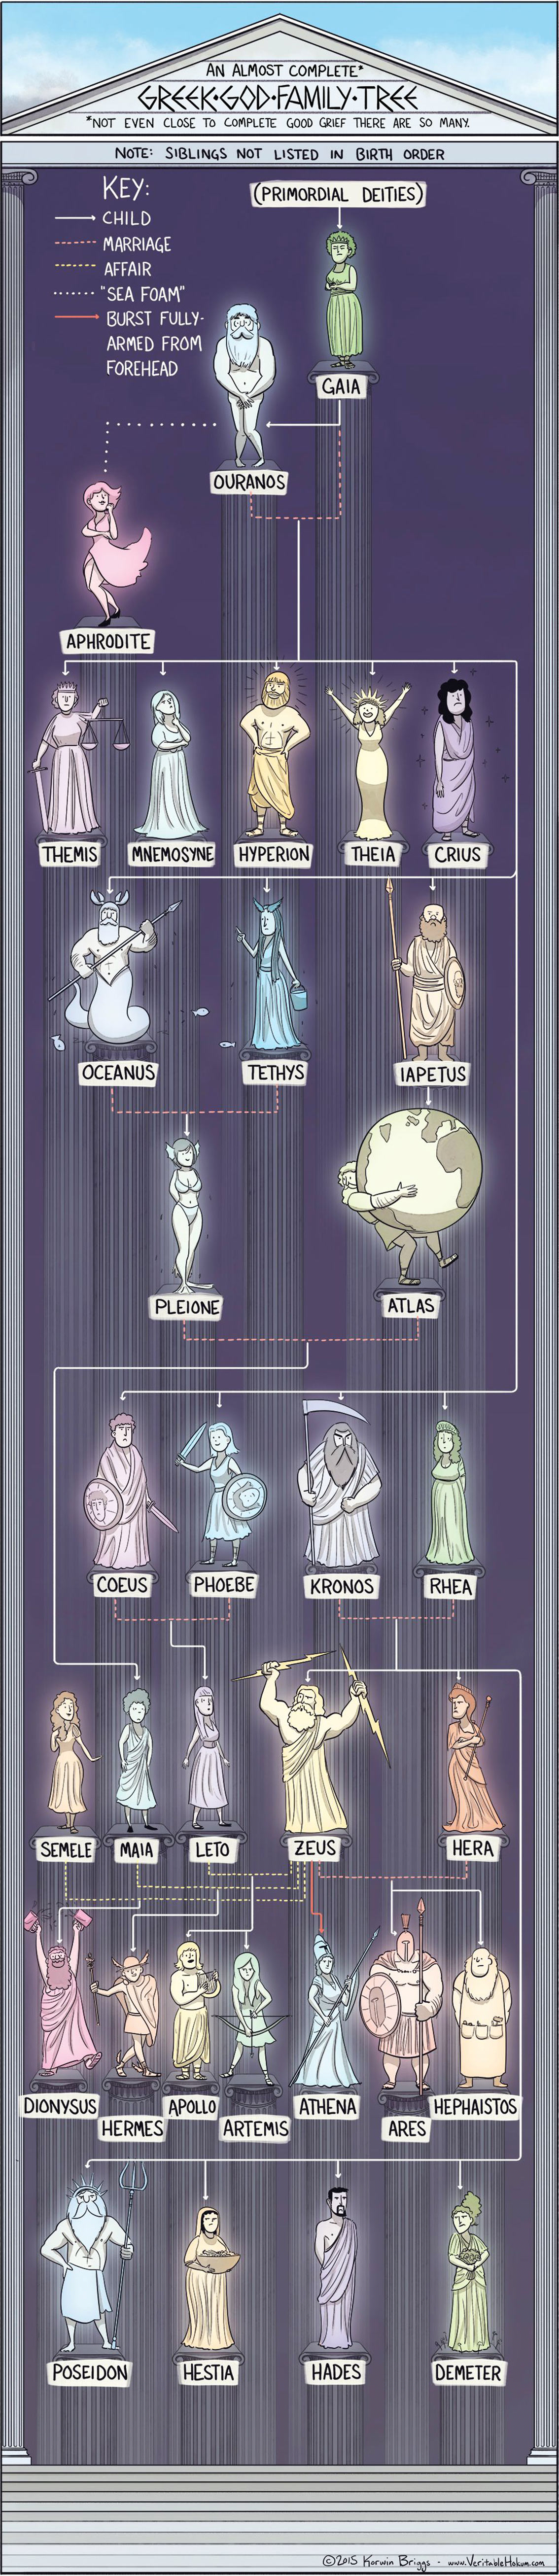 The Greek God Family Tree Infographic